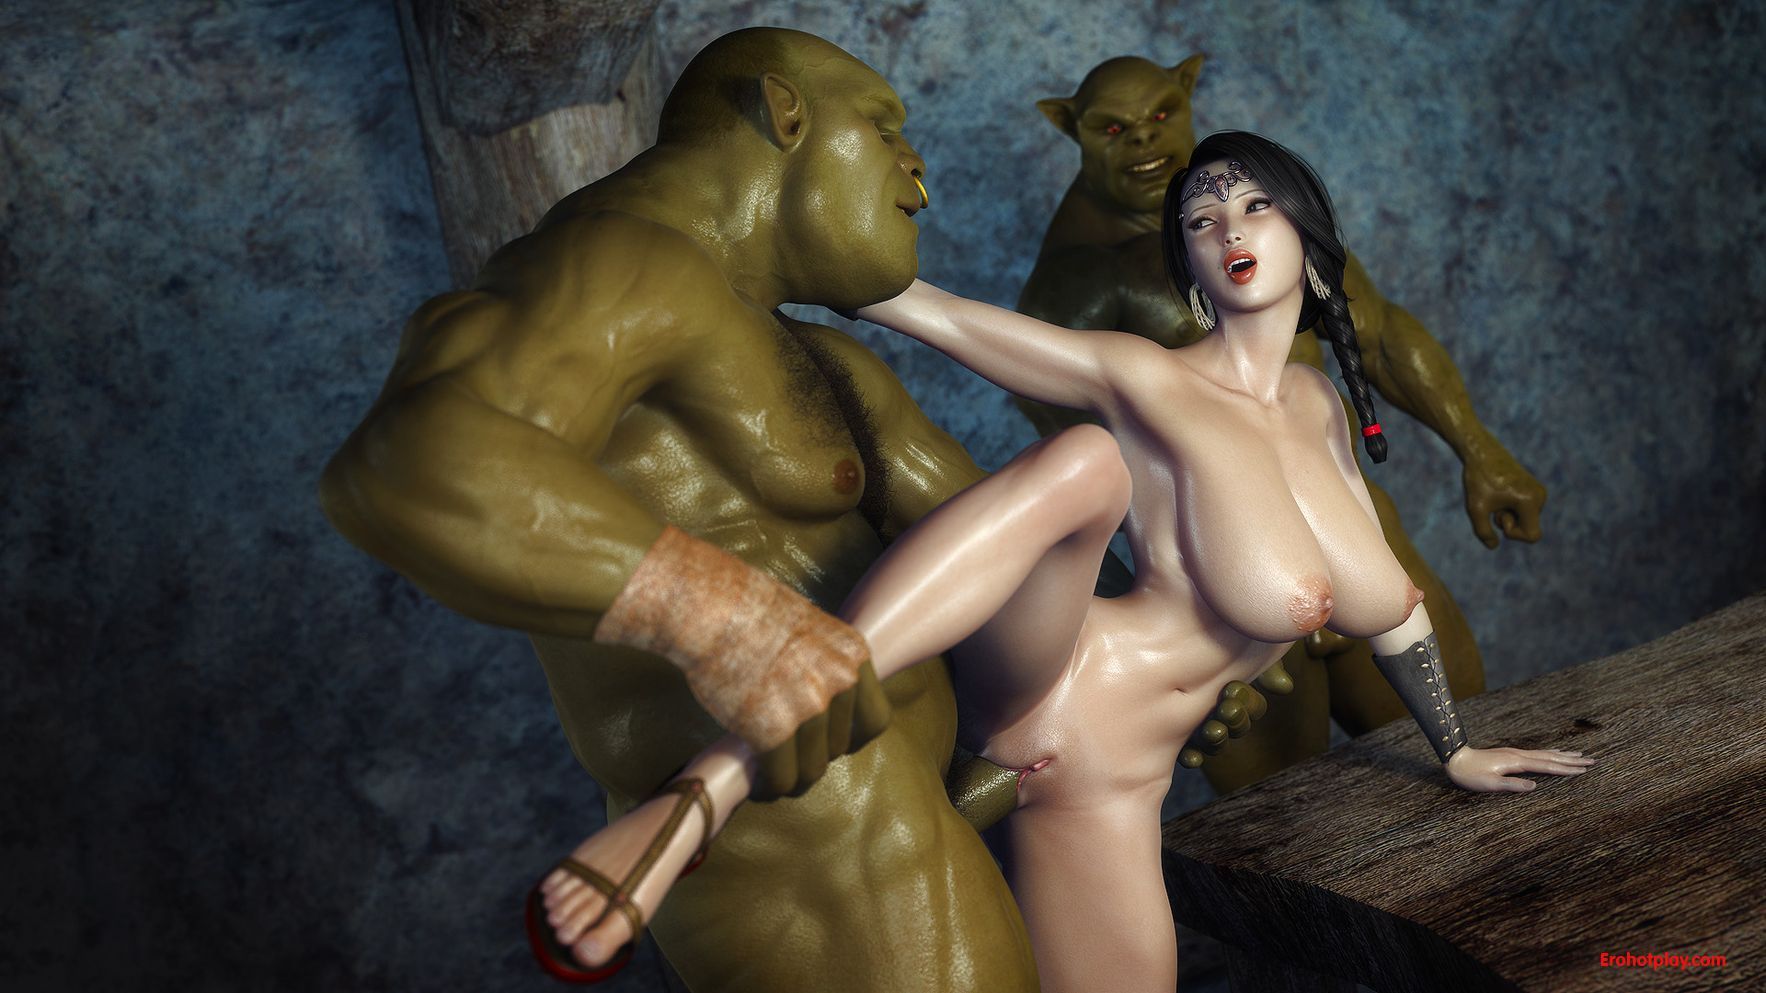 Orc fucks porn elf videos exposed photo